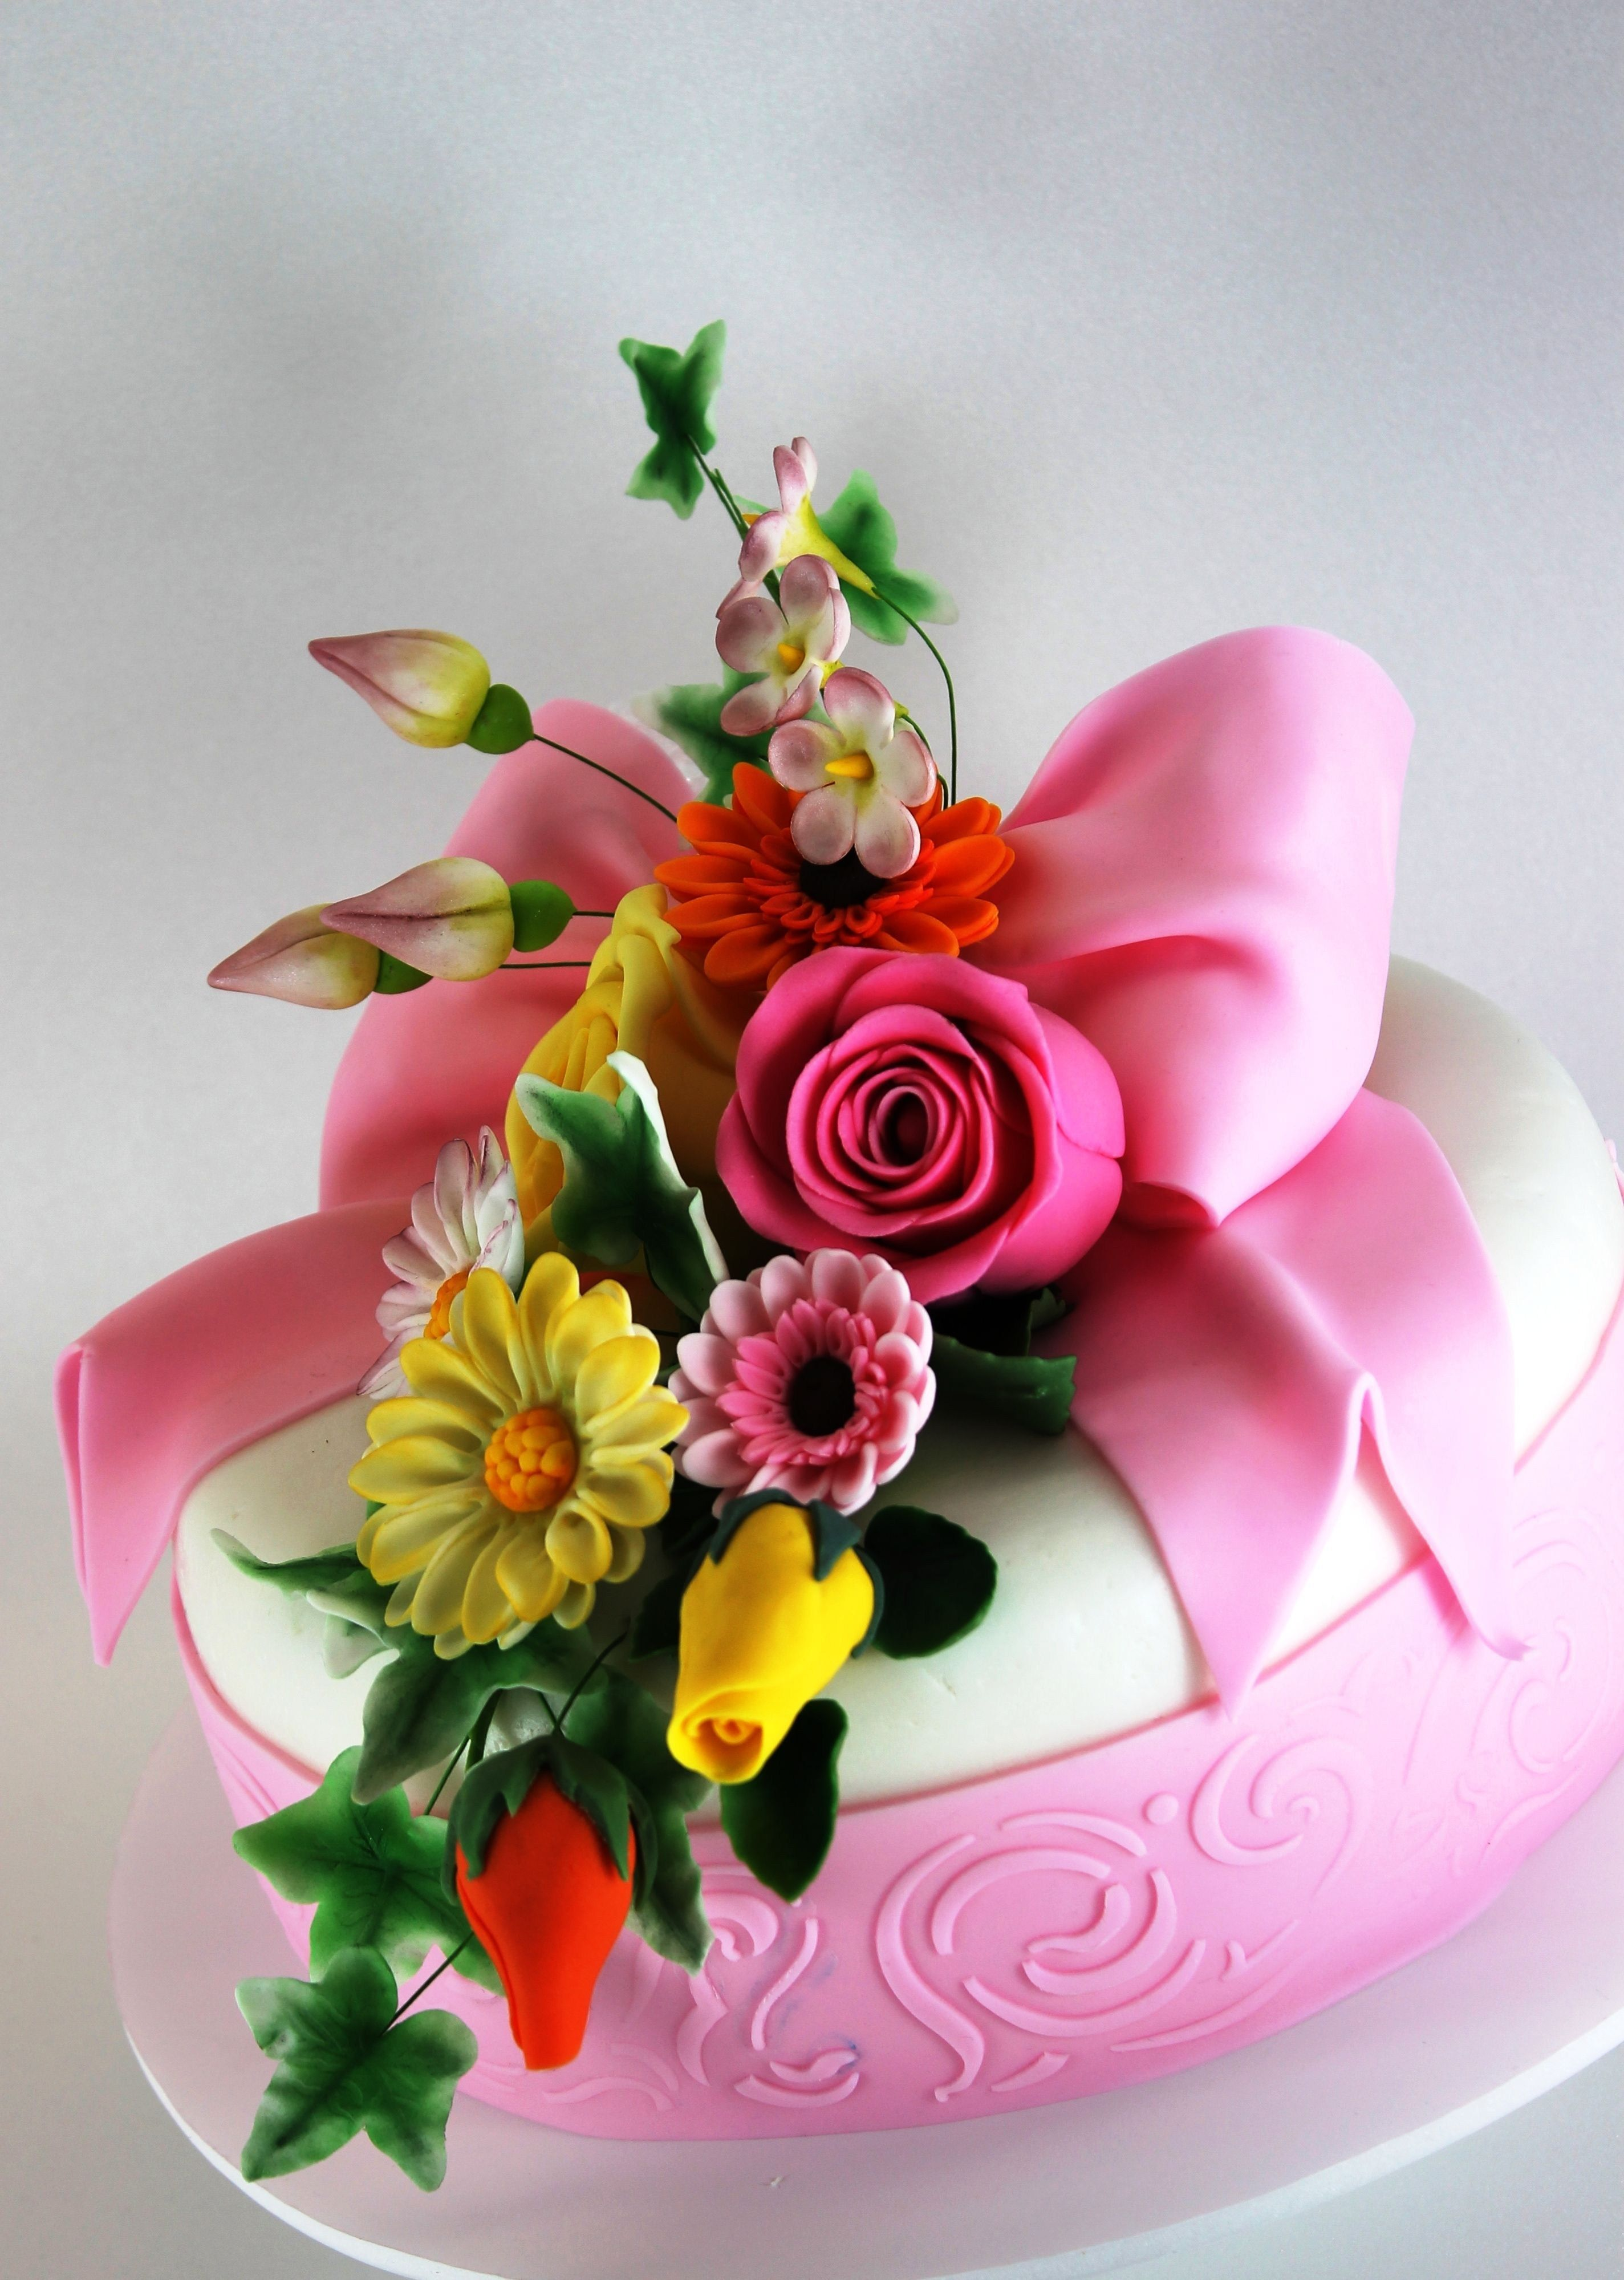 32 great image of happy birthday cake and flowers